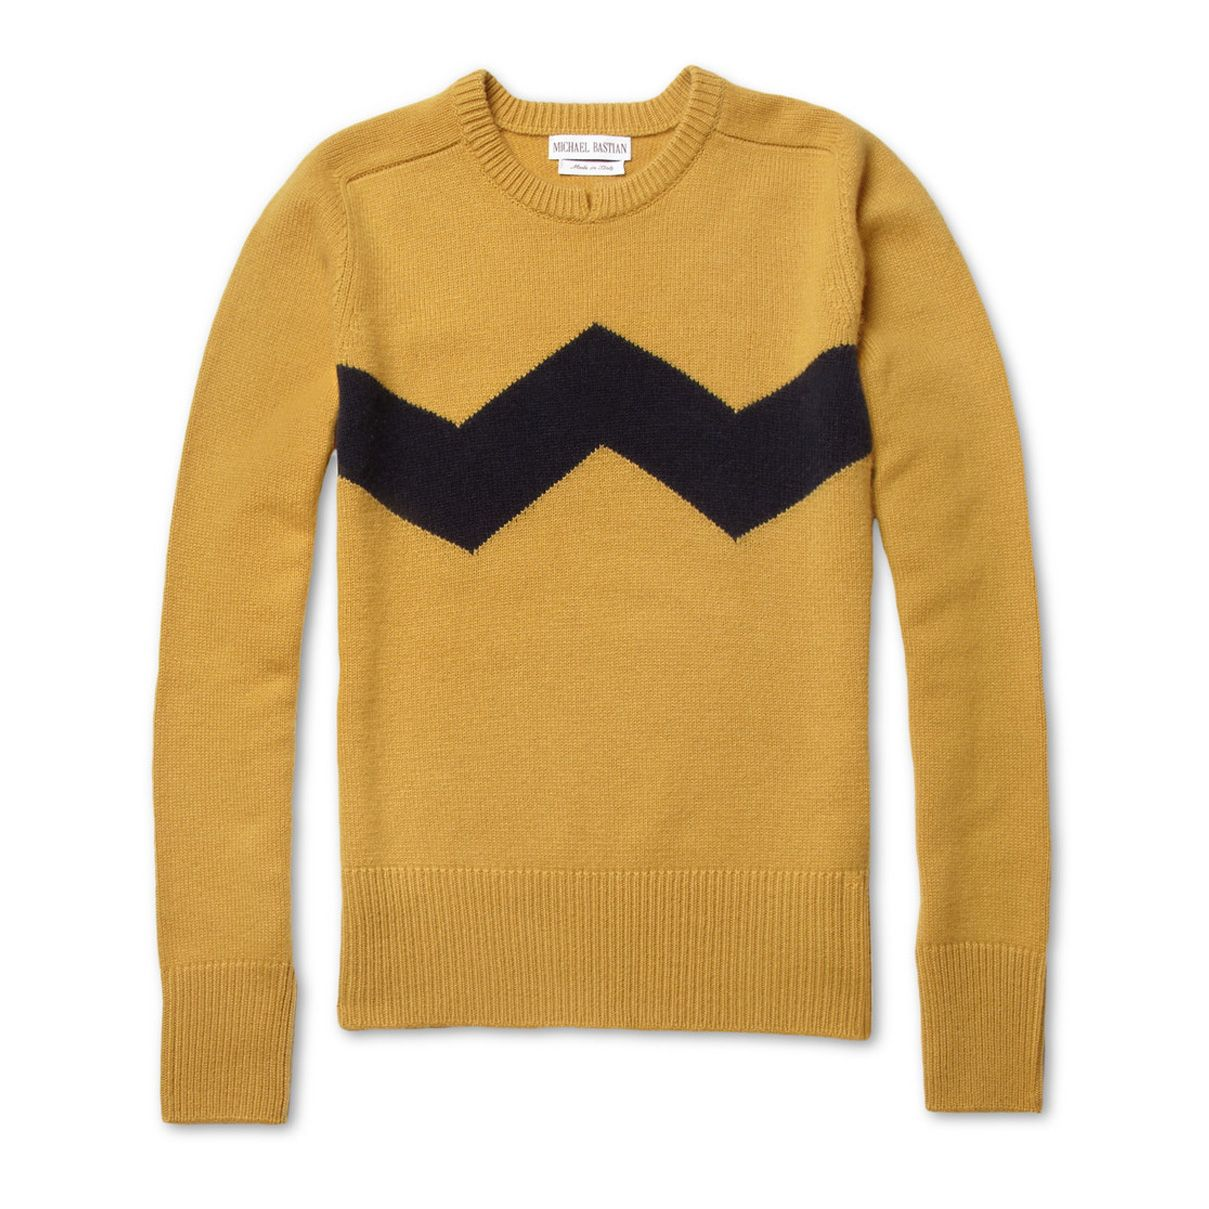 MICHAEL BASTIAN's Charlie Brown sweater is the Peanuts | Men's ...